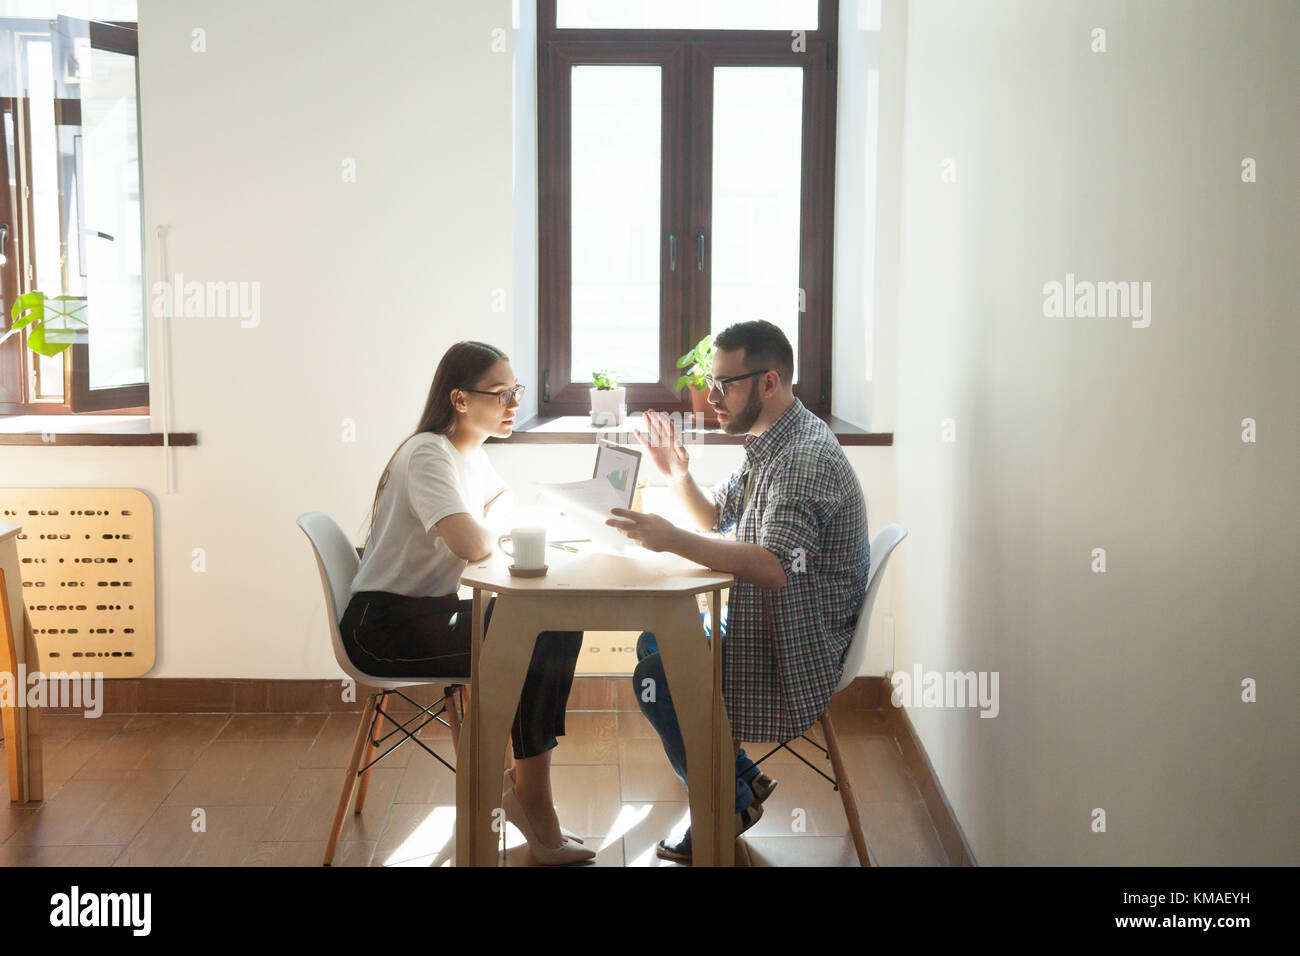 Businessman and businesswoman discussing working problems in office. Two millennial employees having business meeting - Stock Image